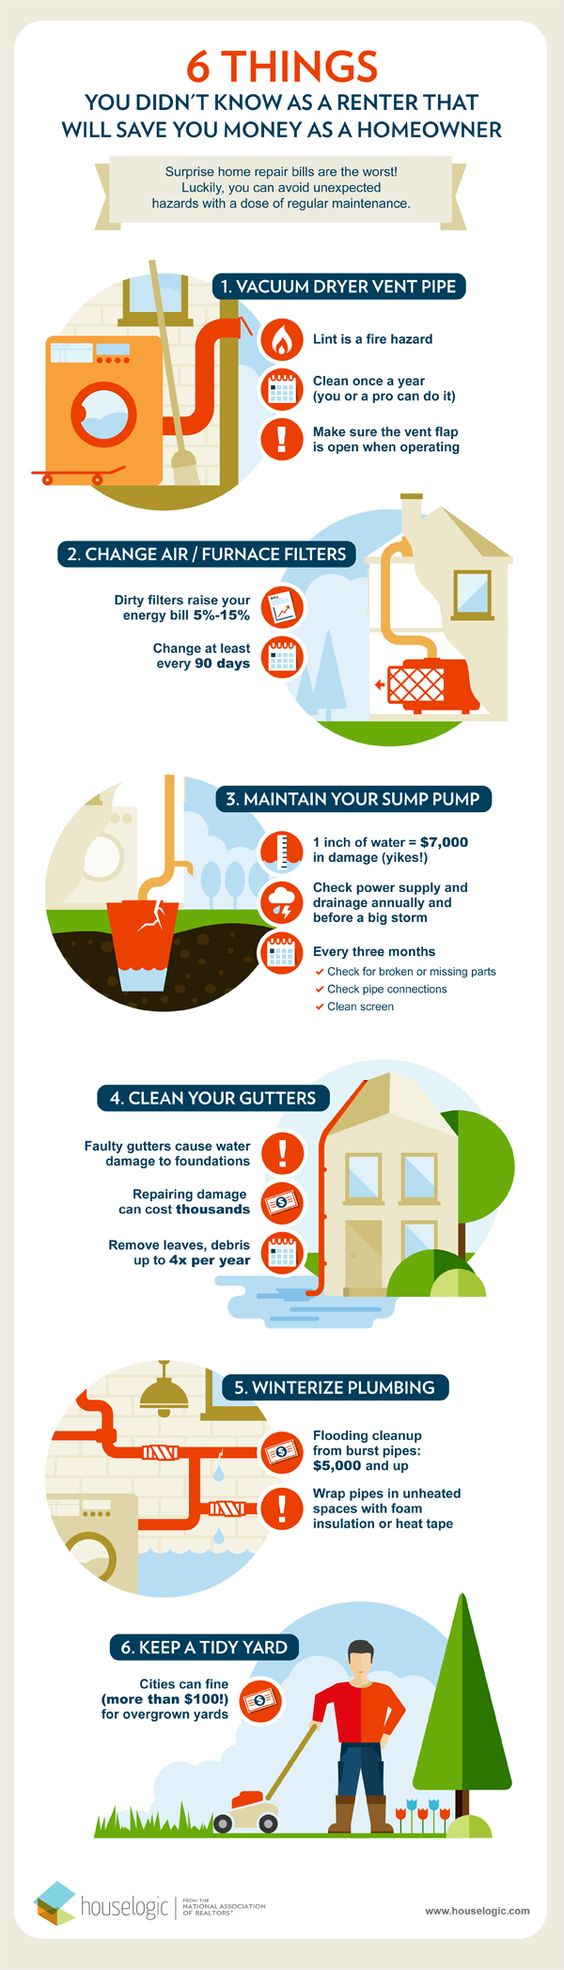 Buying your first home? These 6 money-saving tips will help you avoid preventable home maintenance problems.